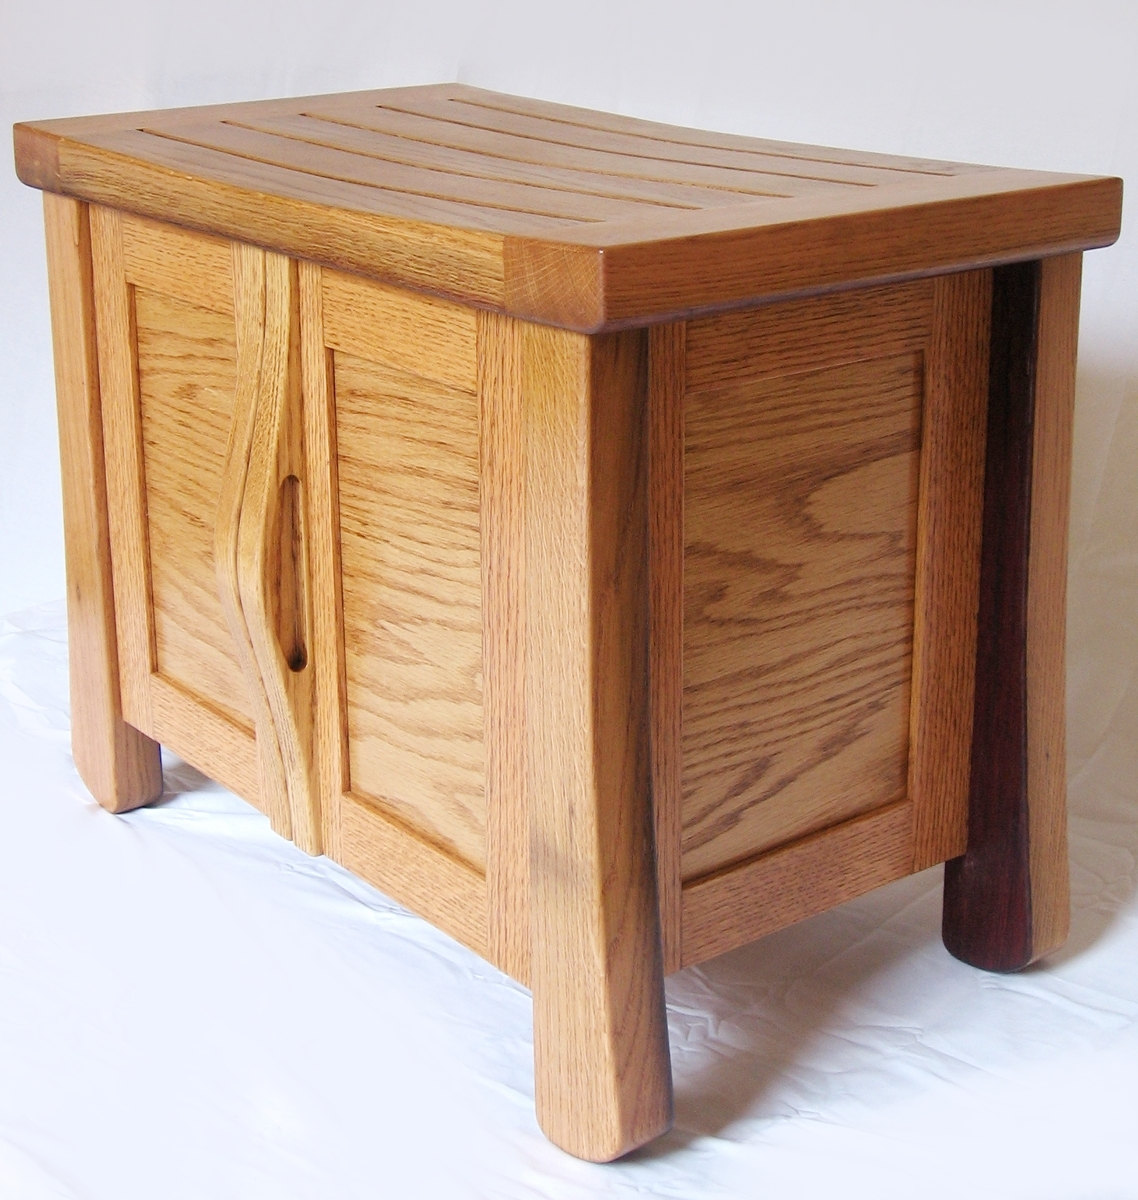 Elf Small Oak Cabinet Bench Recycled Wine Fermentation